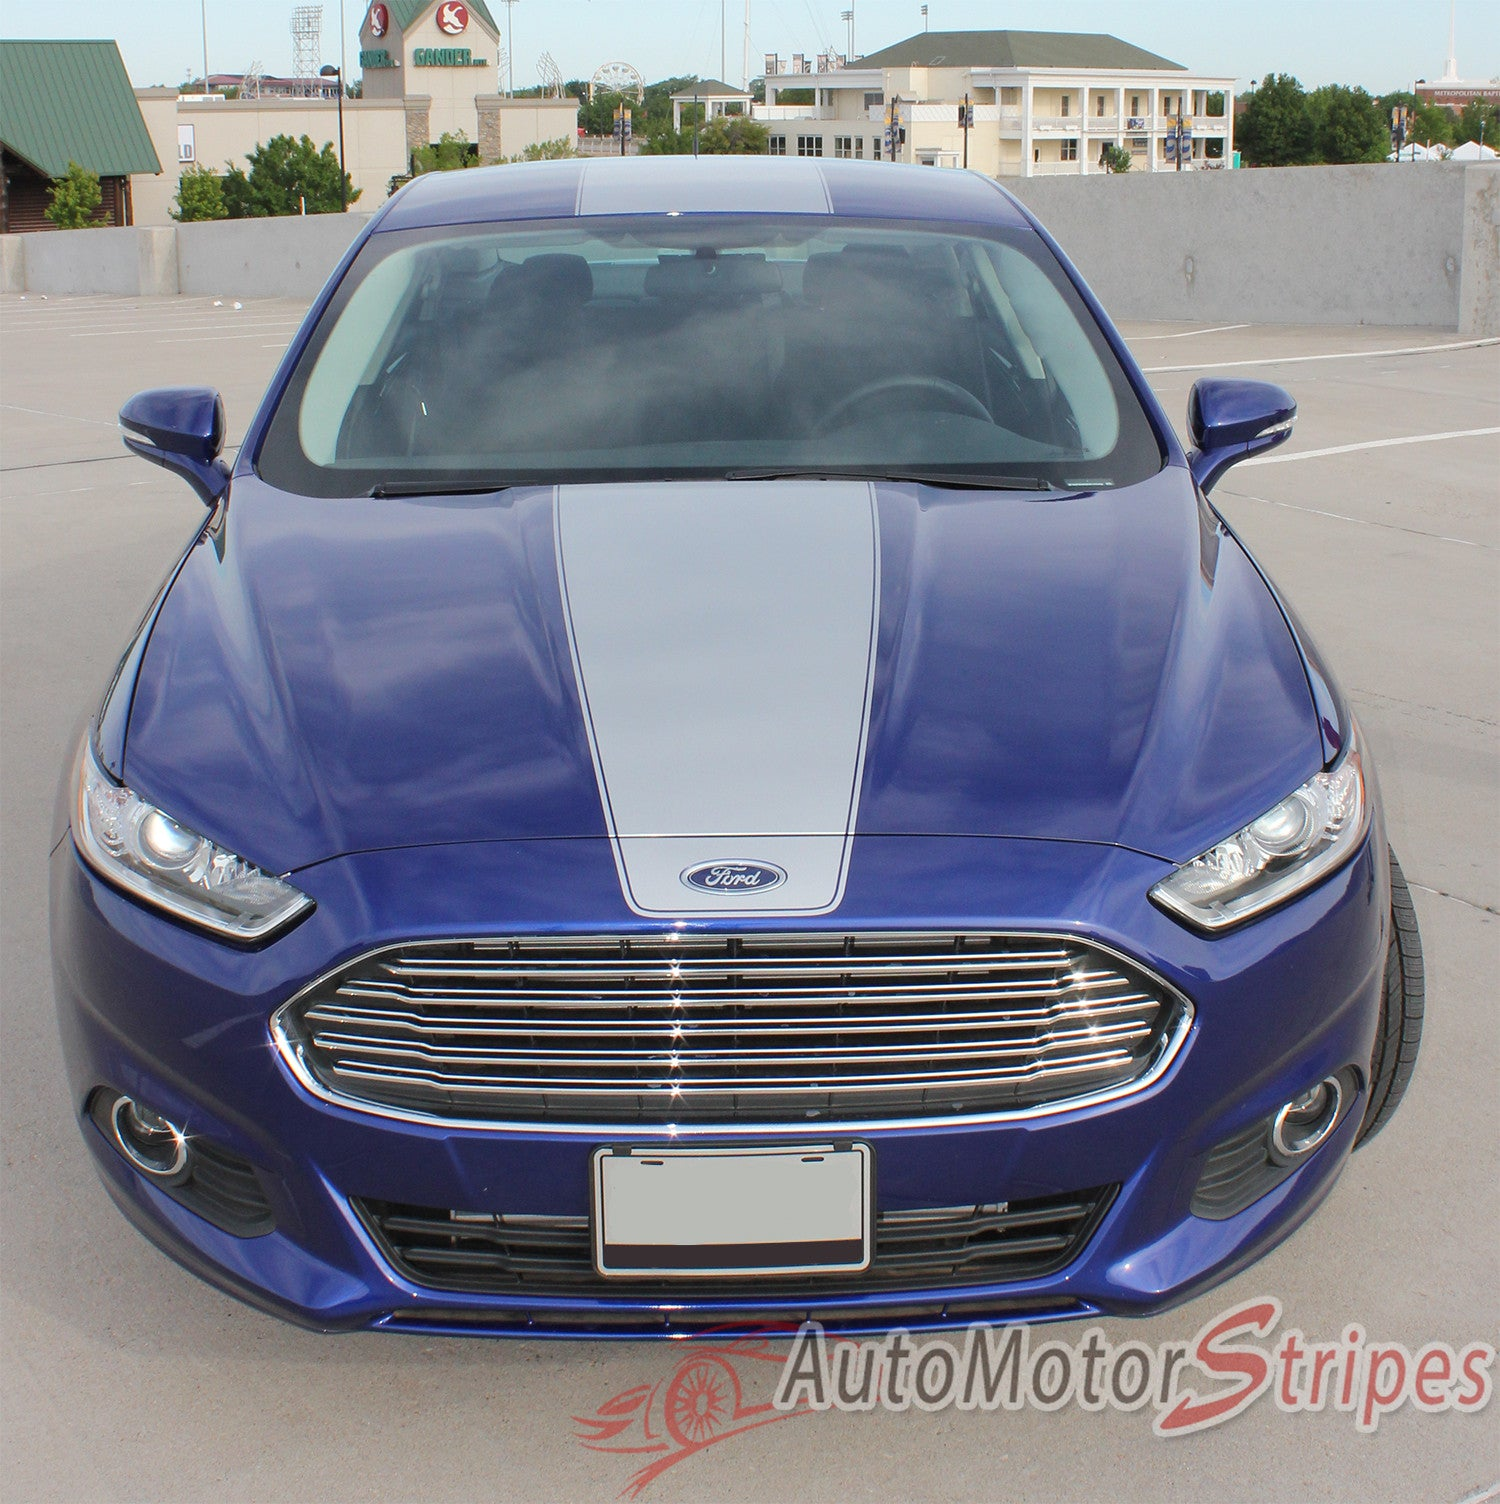 2013 2017 ford fusion overview complete center hood roof. Black Bedroom Furniture Sets. Home Design Ideas